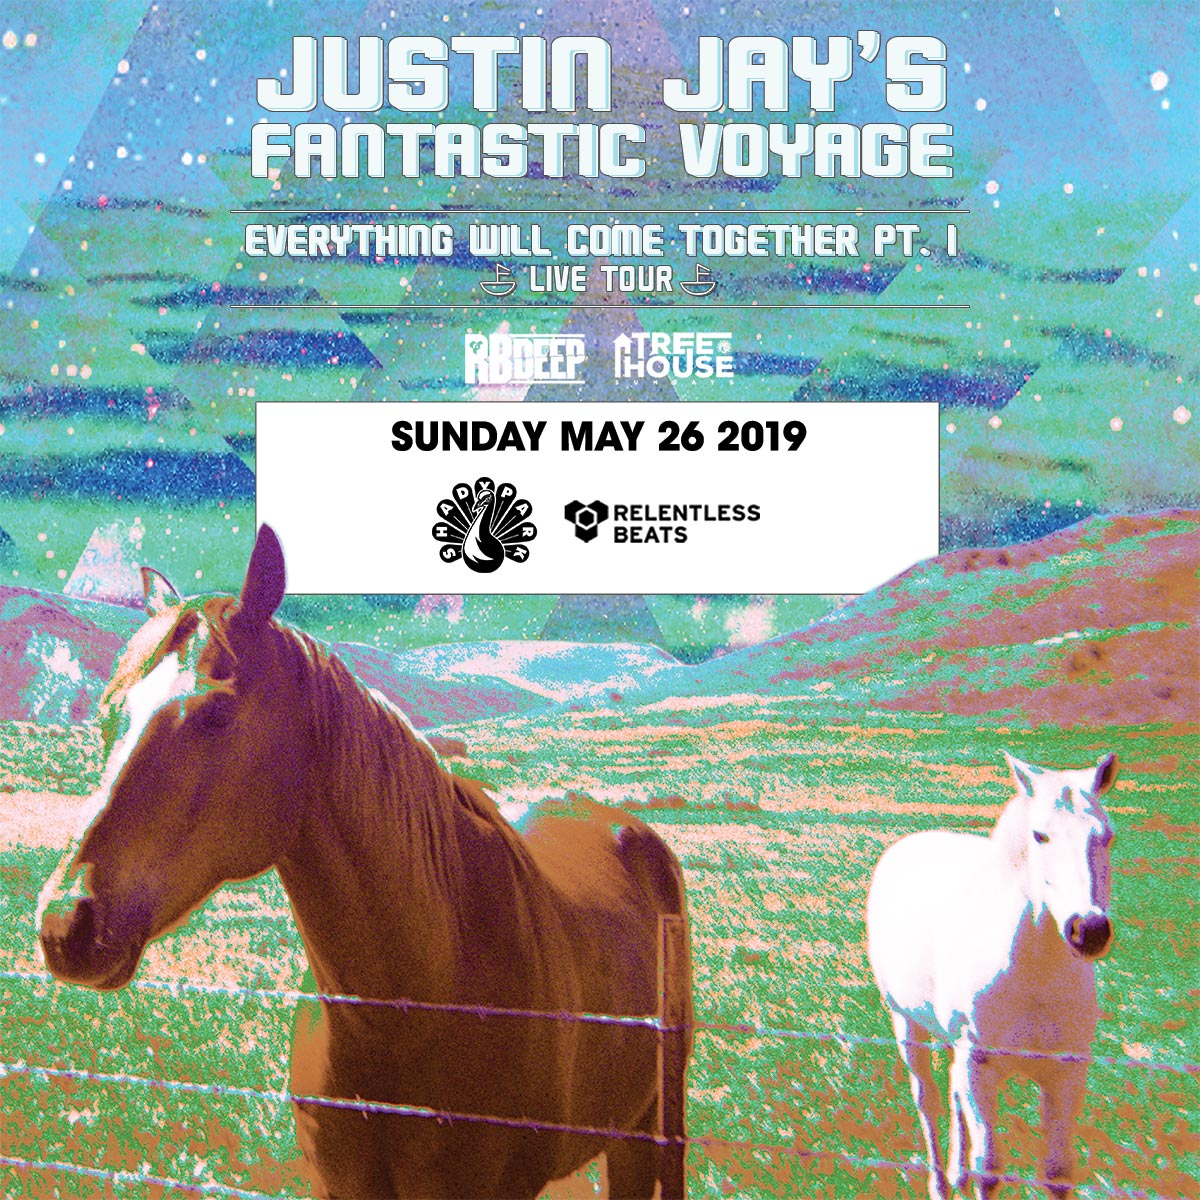 Flyer for Justin Jay